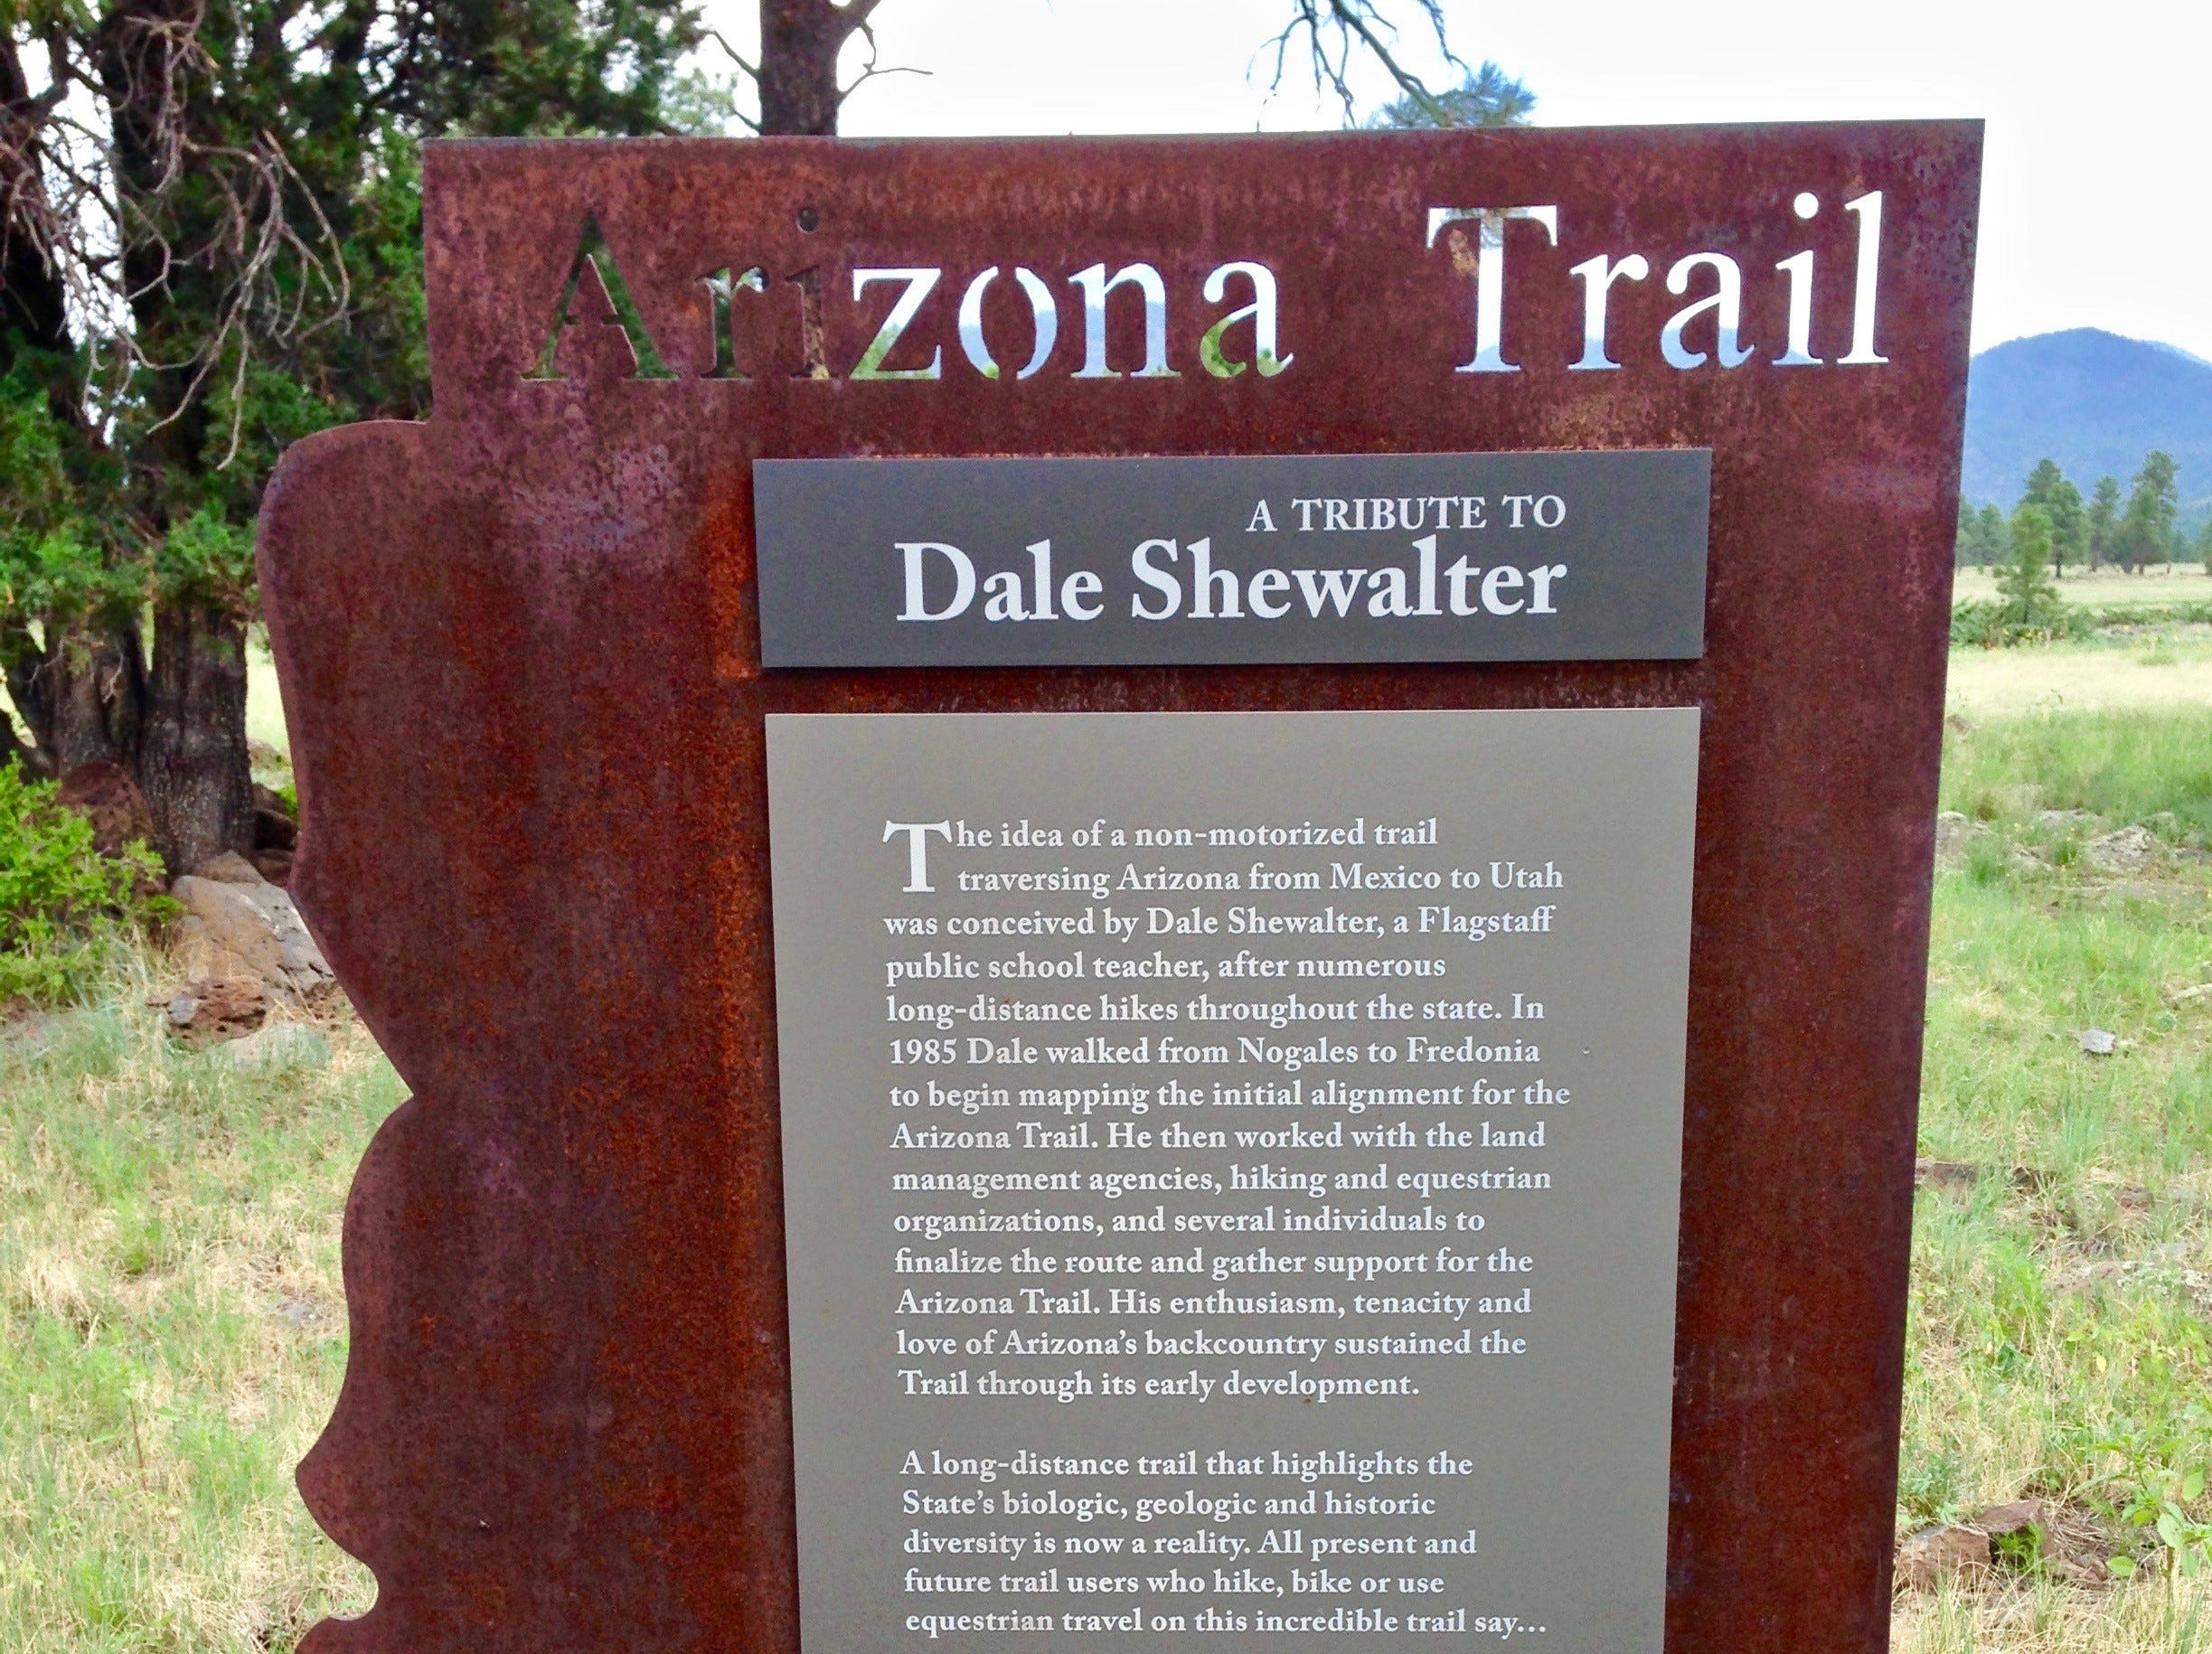 A tribute to Dale Shewalter, the man responsible for the creation of the Arizona Trail, can be found in Flagstaff's Buffalo Park.